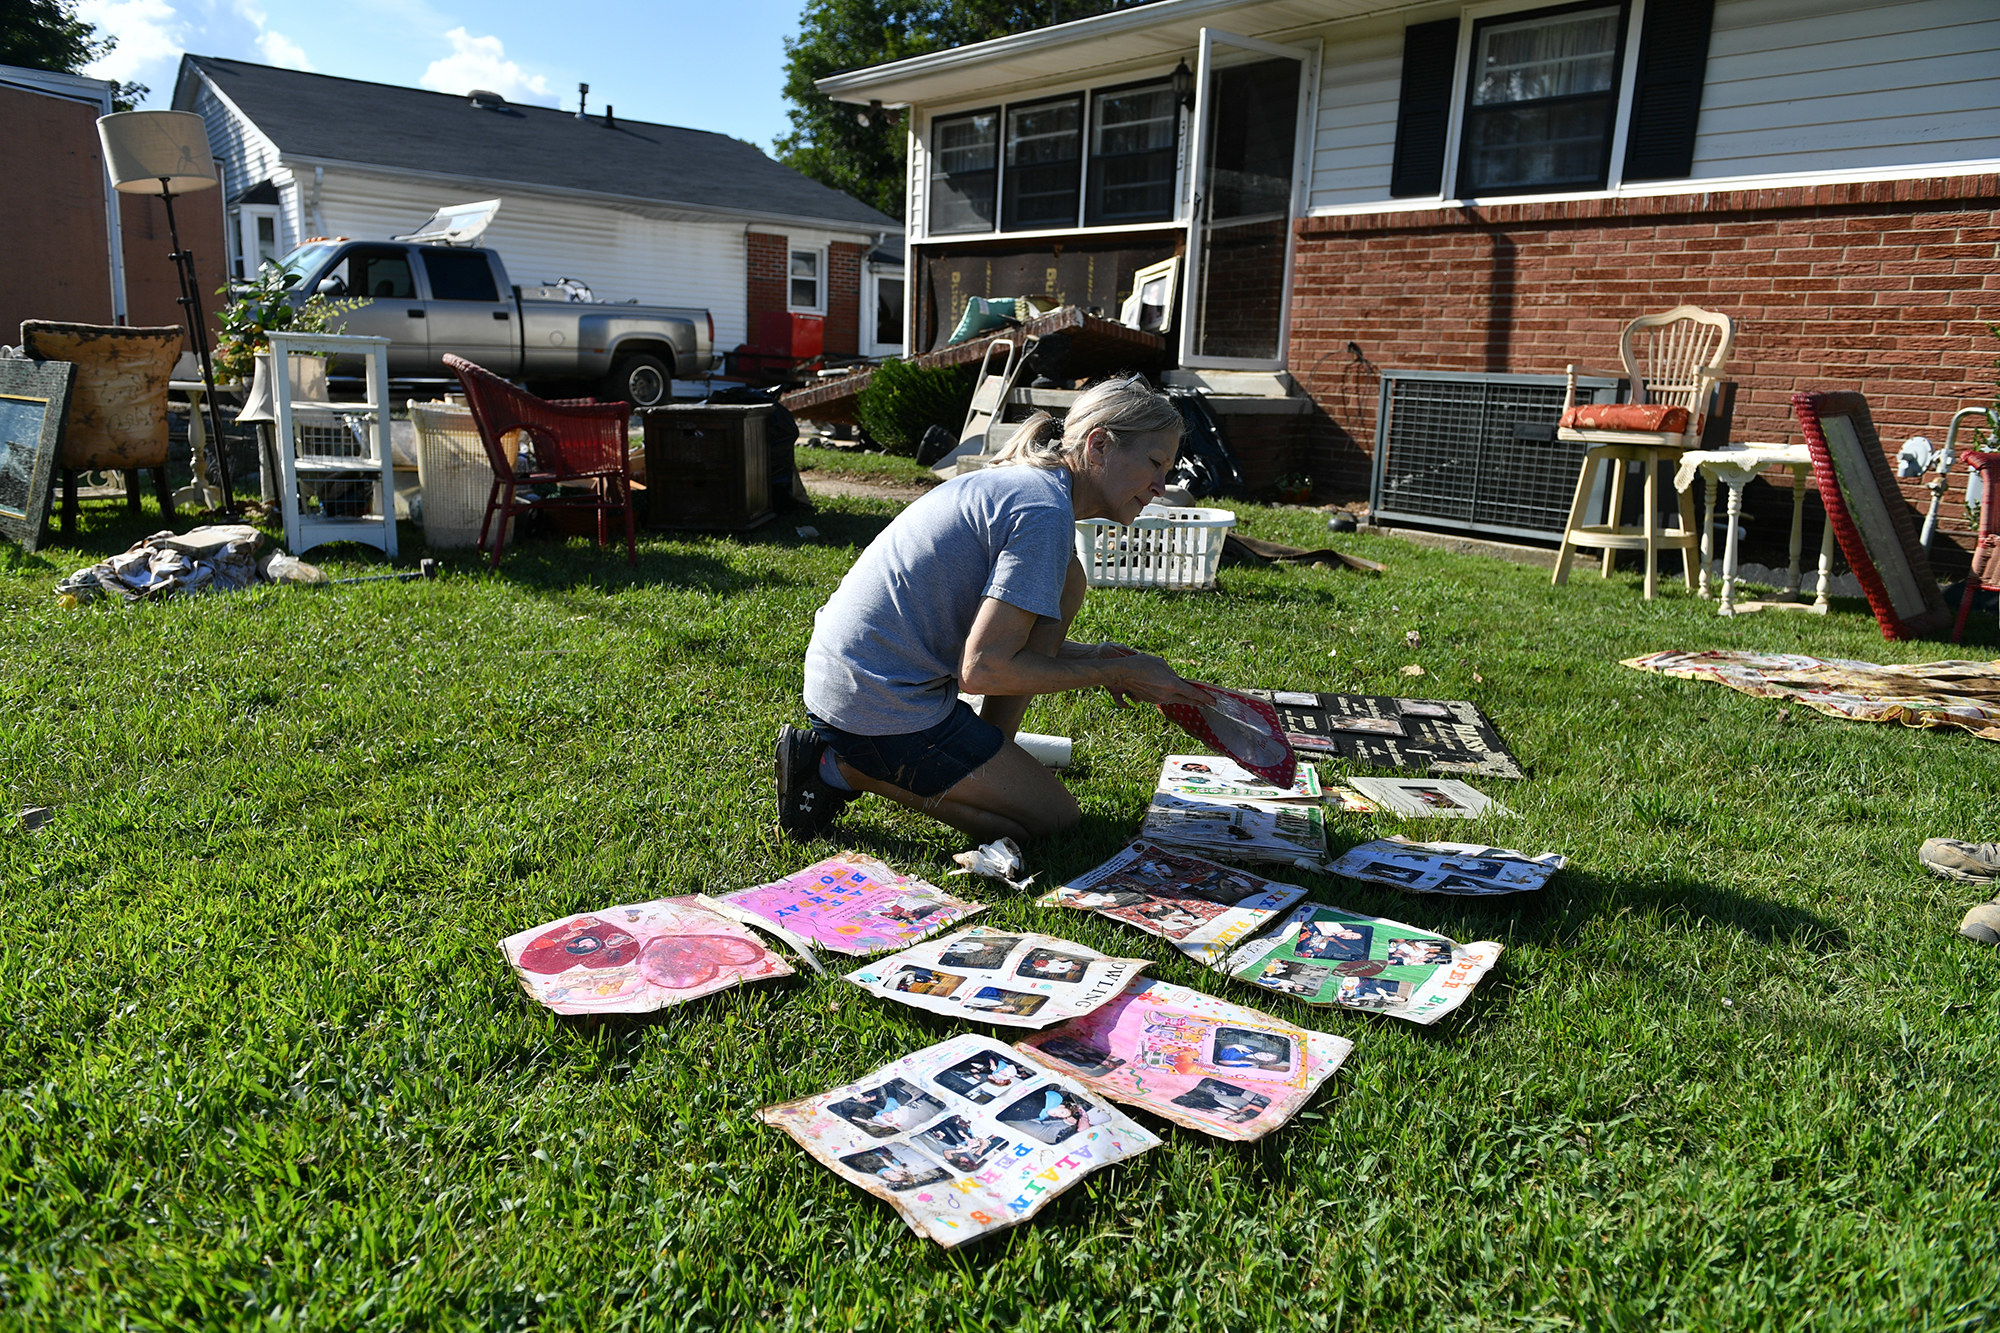 A woman places photos on their front lawn to dry